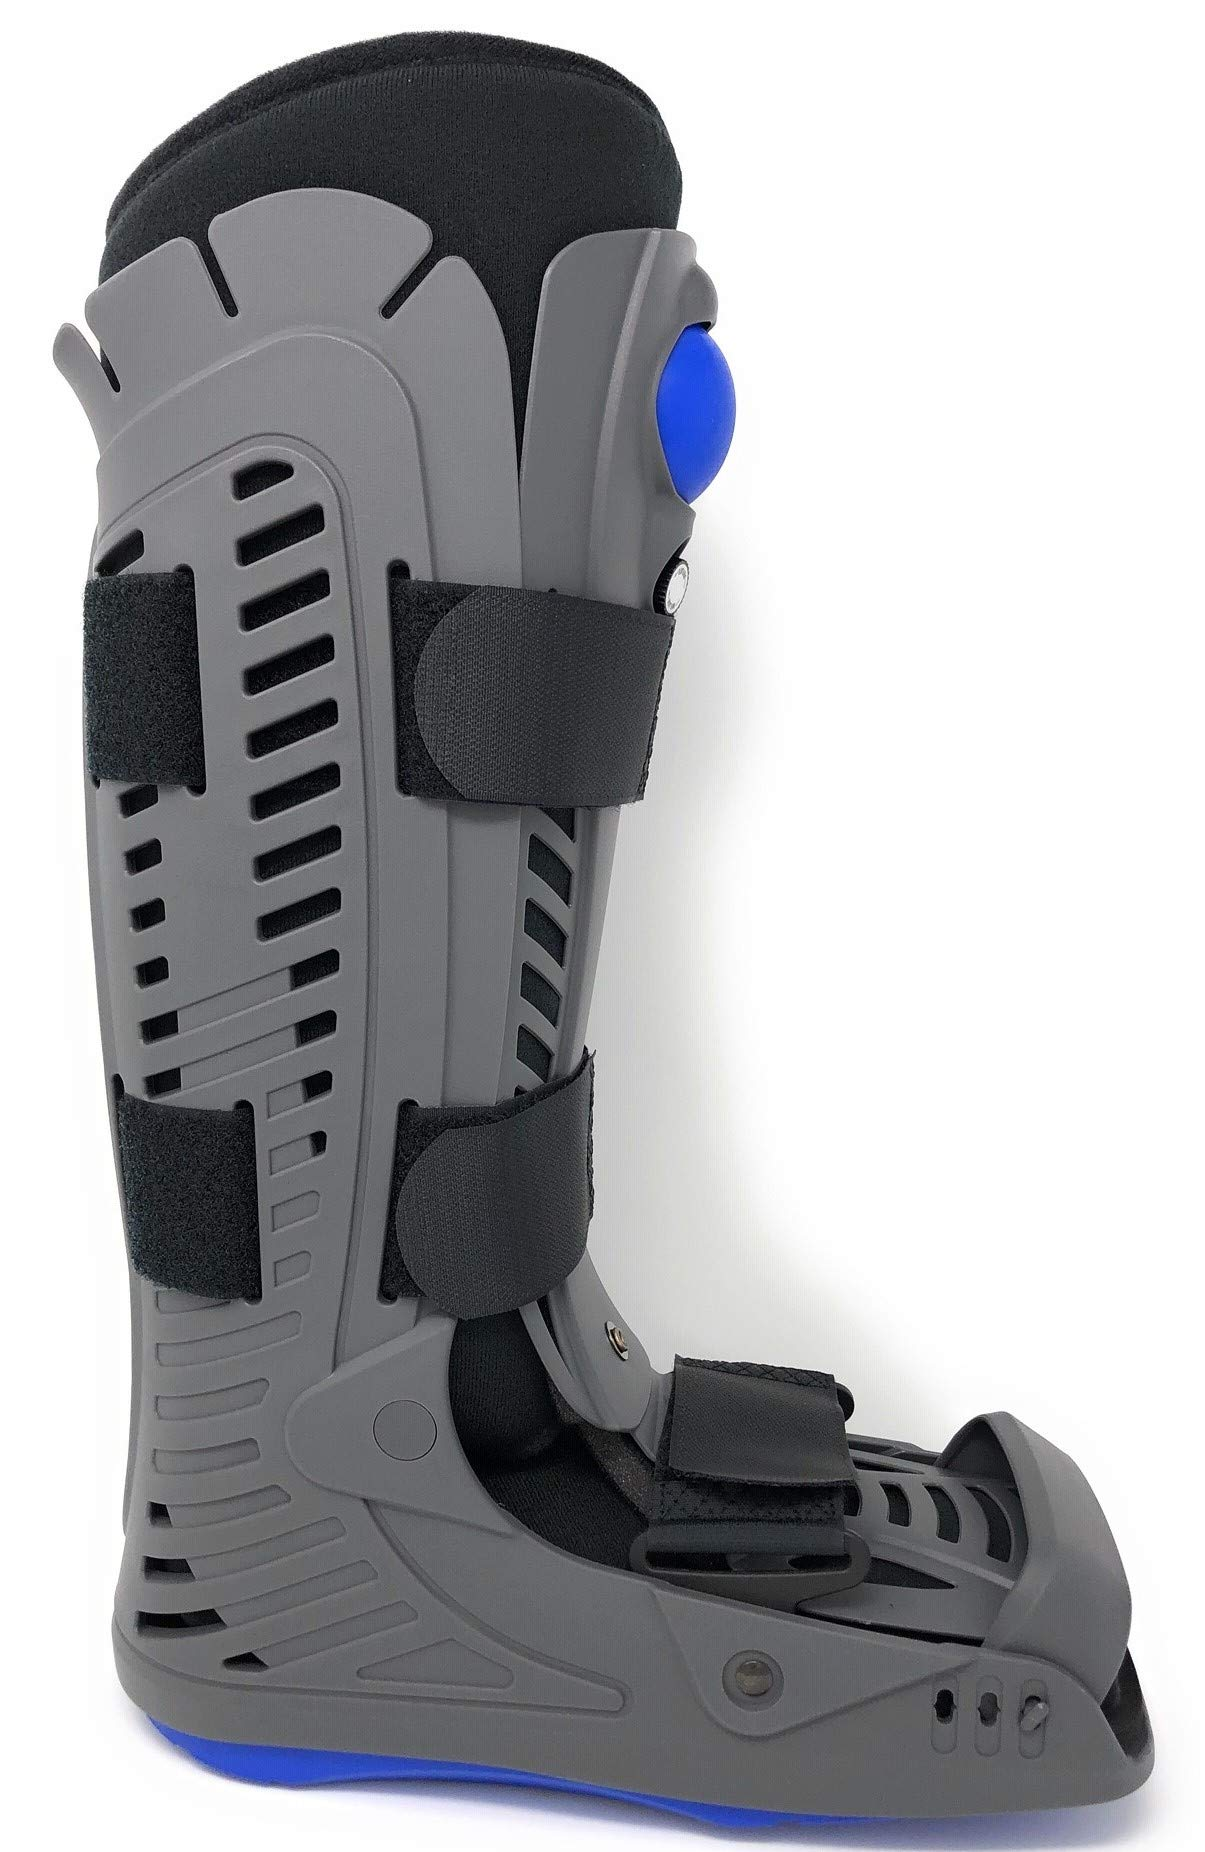 SB High Top Closed Toe Air Medical Fracture Boot (X-Small) by SB SUPERIORBRACES